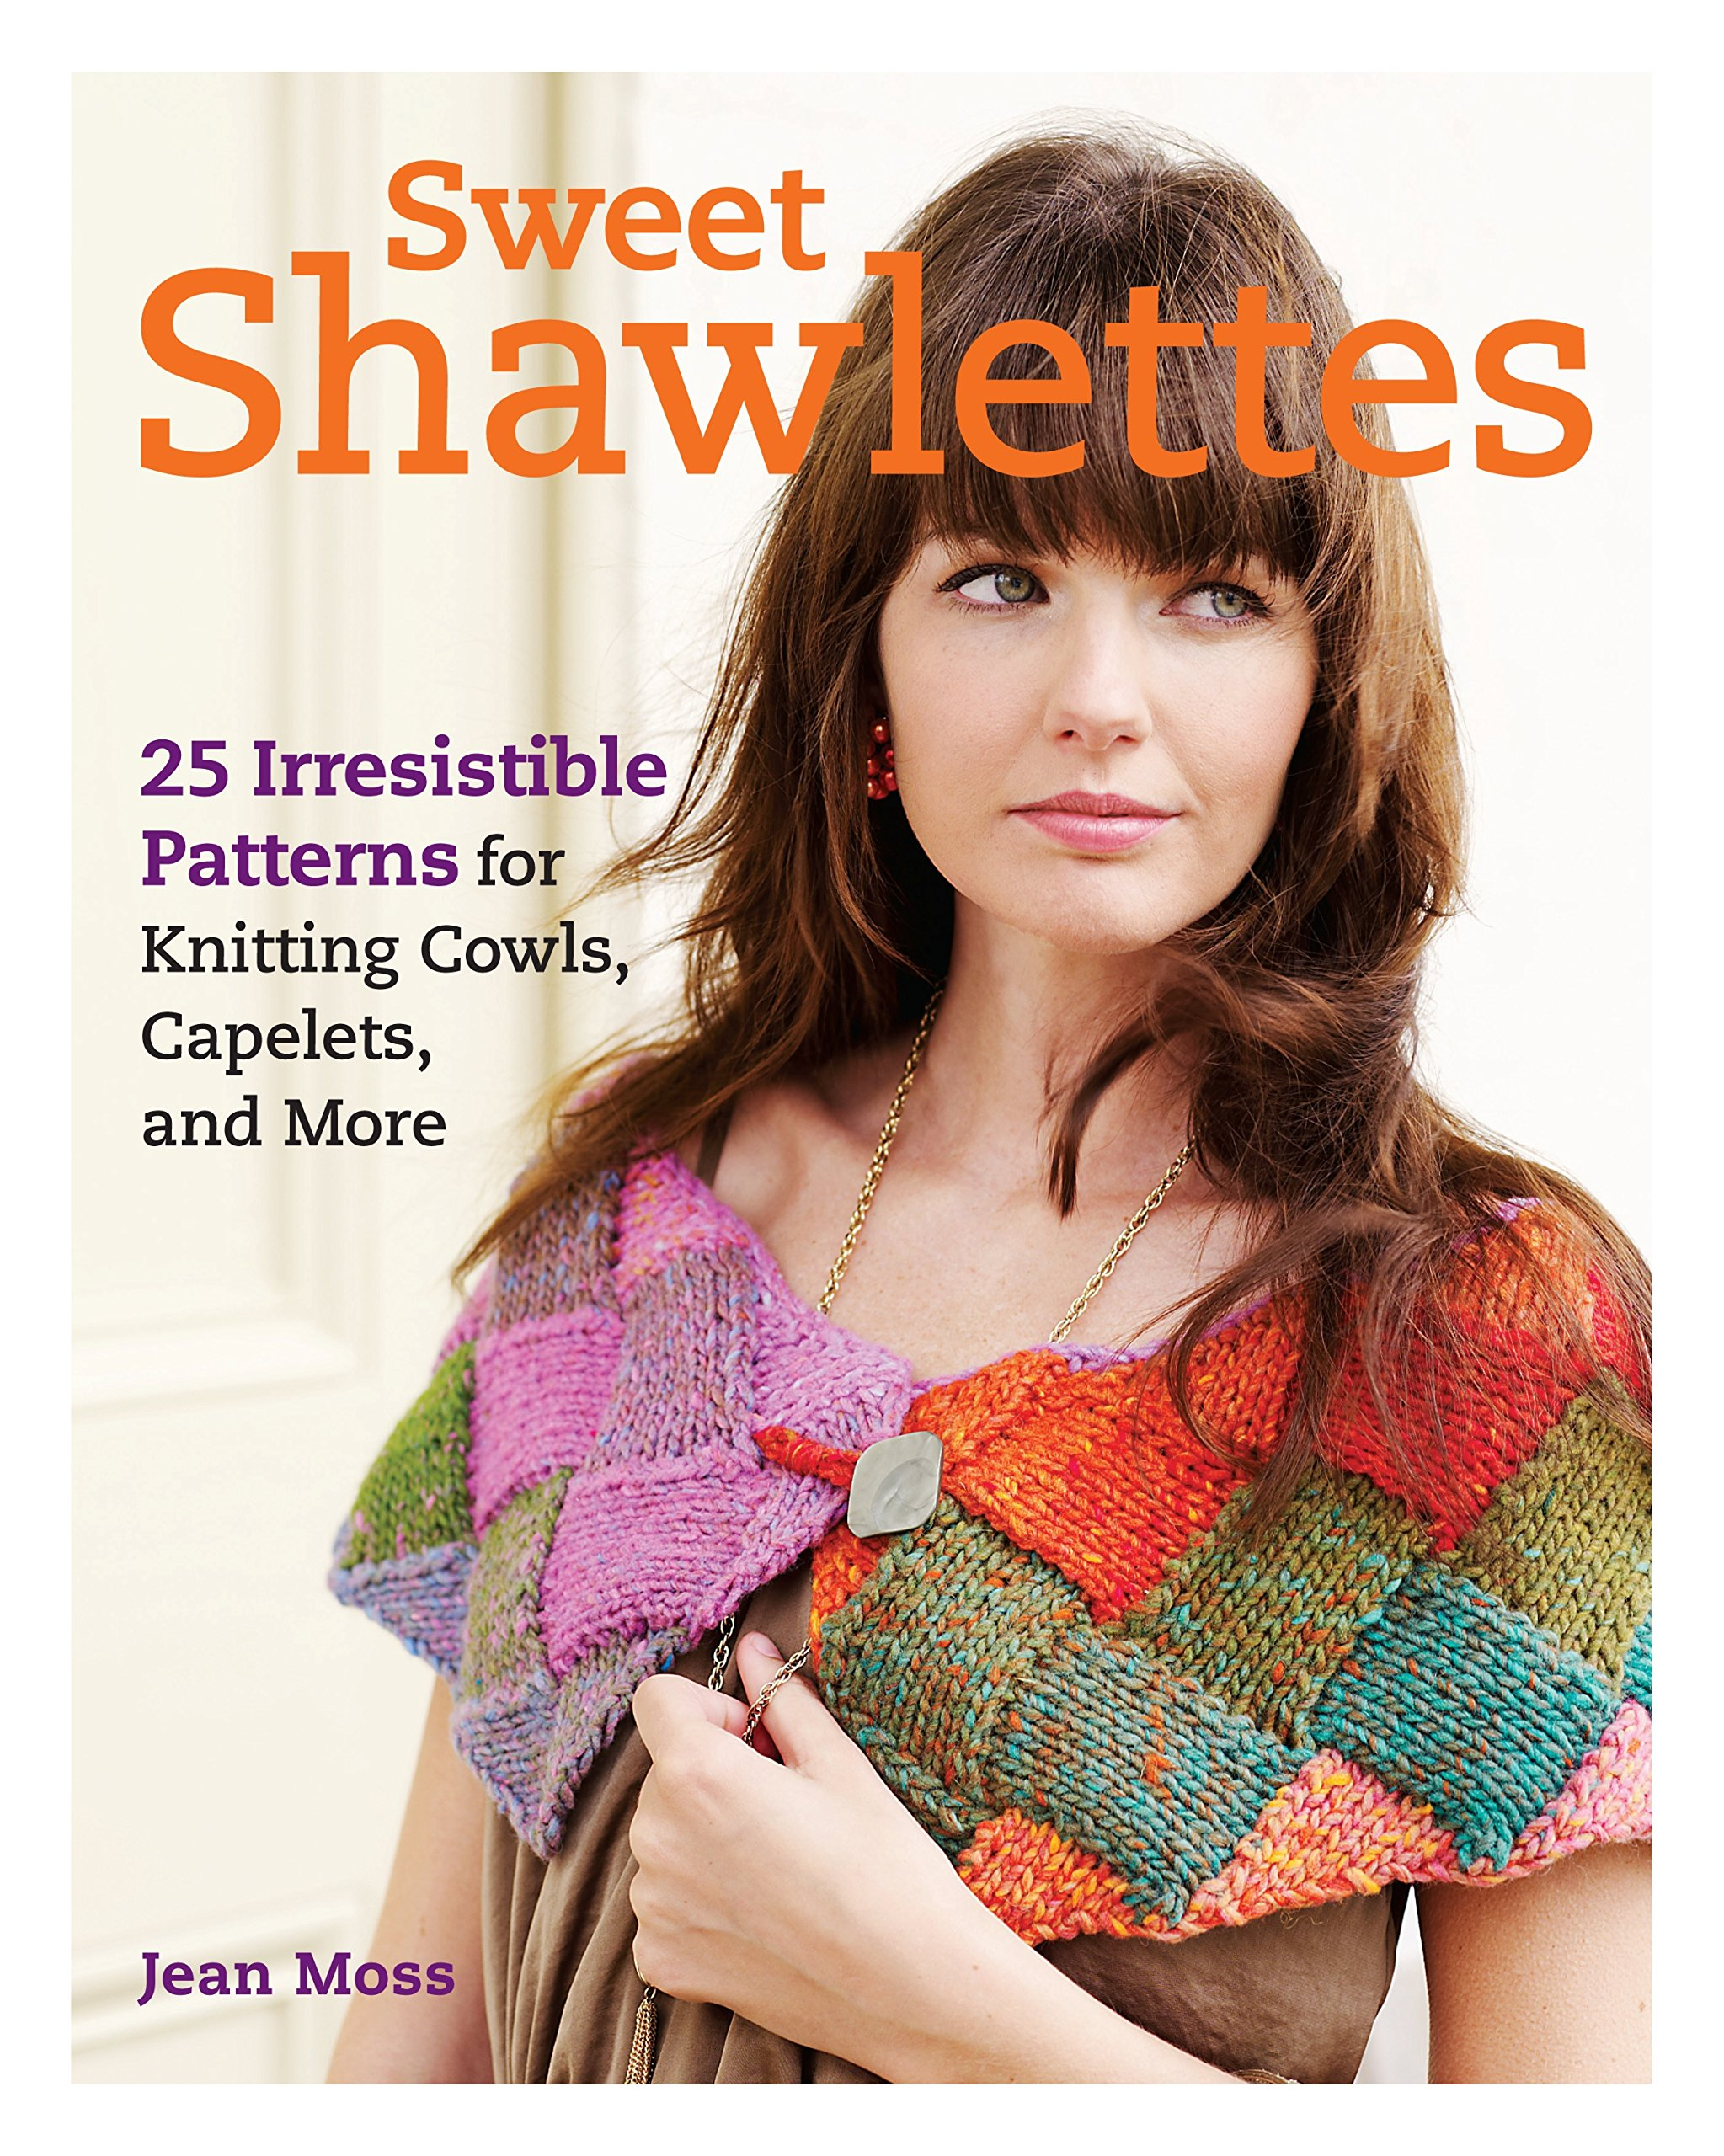 Amazon sweet shawlettes 25 irresistible patterns for amazon sweet shawlettes 25 irresistible patterns for knitting cowls capelets and more 0499991607303 jean moss books bankloansurffo Gallery